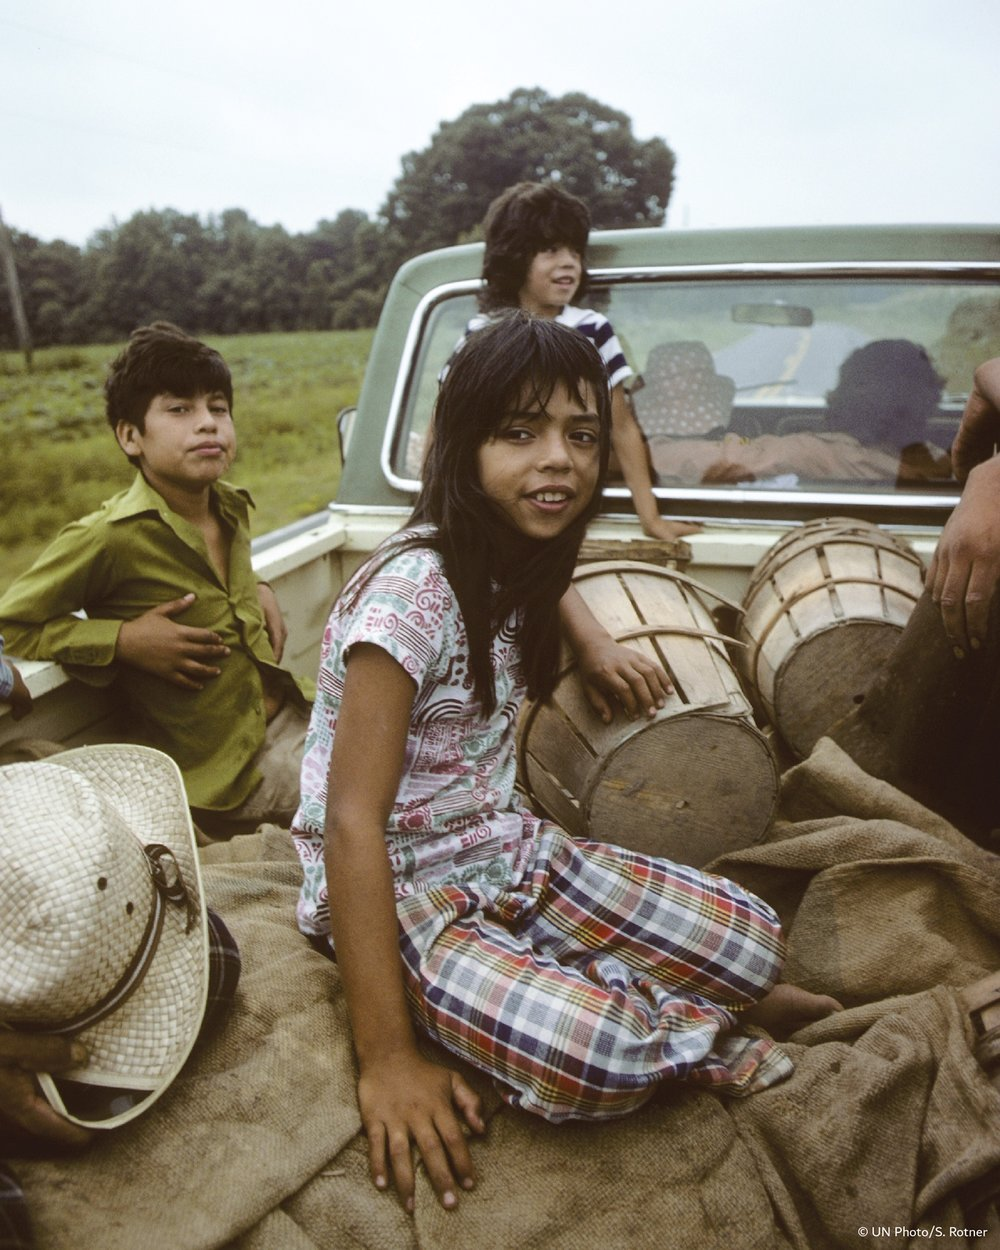 Child migrant workers are driven to fields in North Carolina. Courtesy UN Photo/S.Rotner